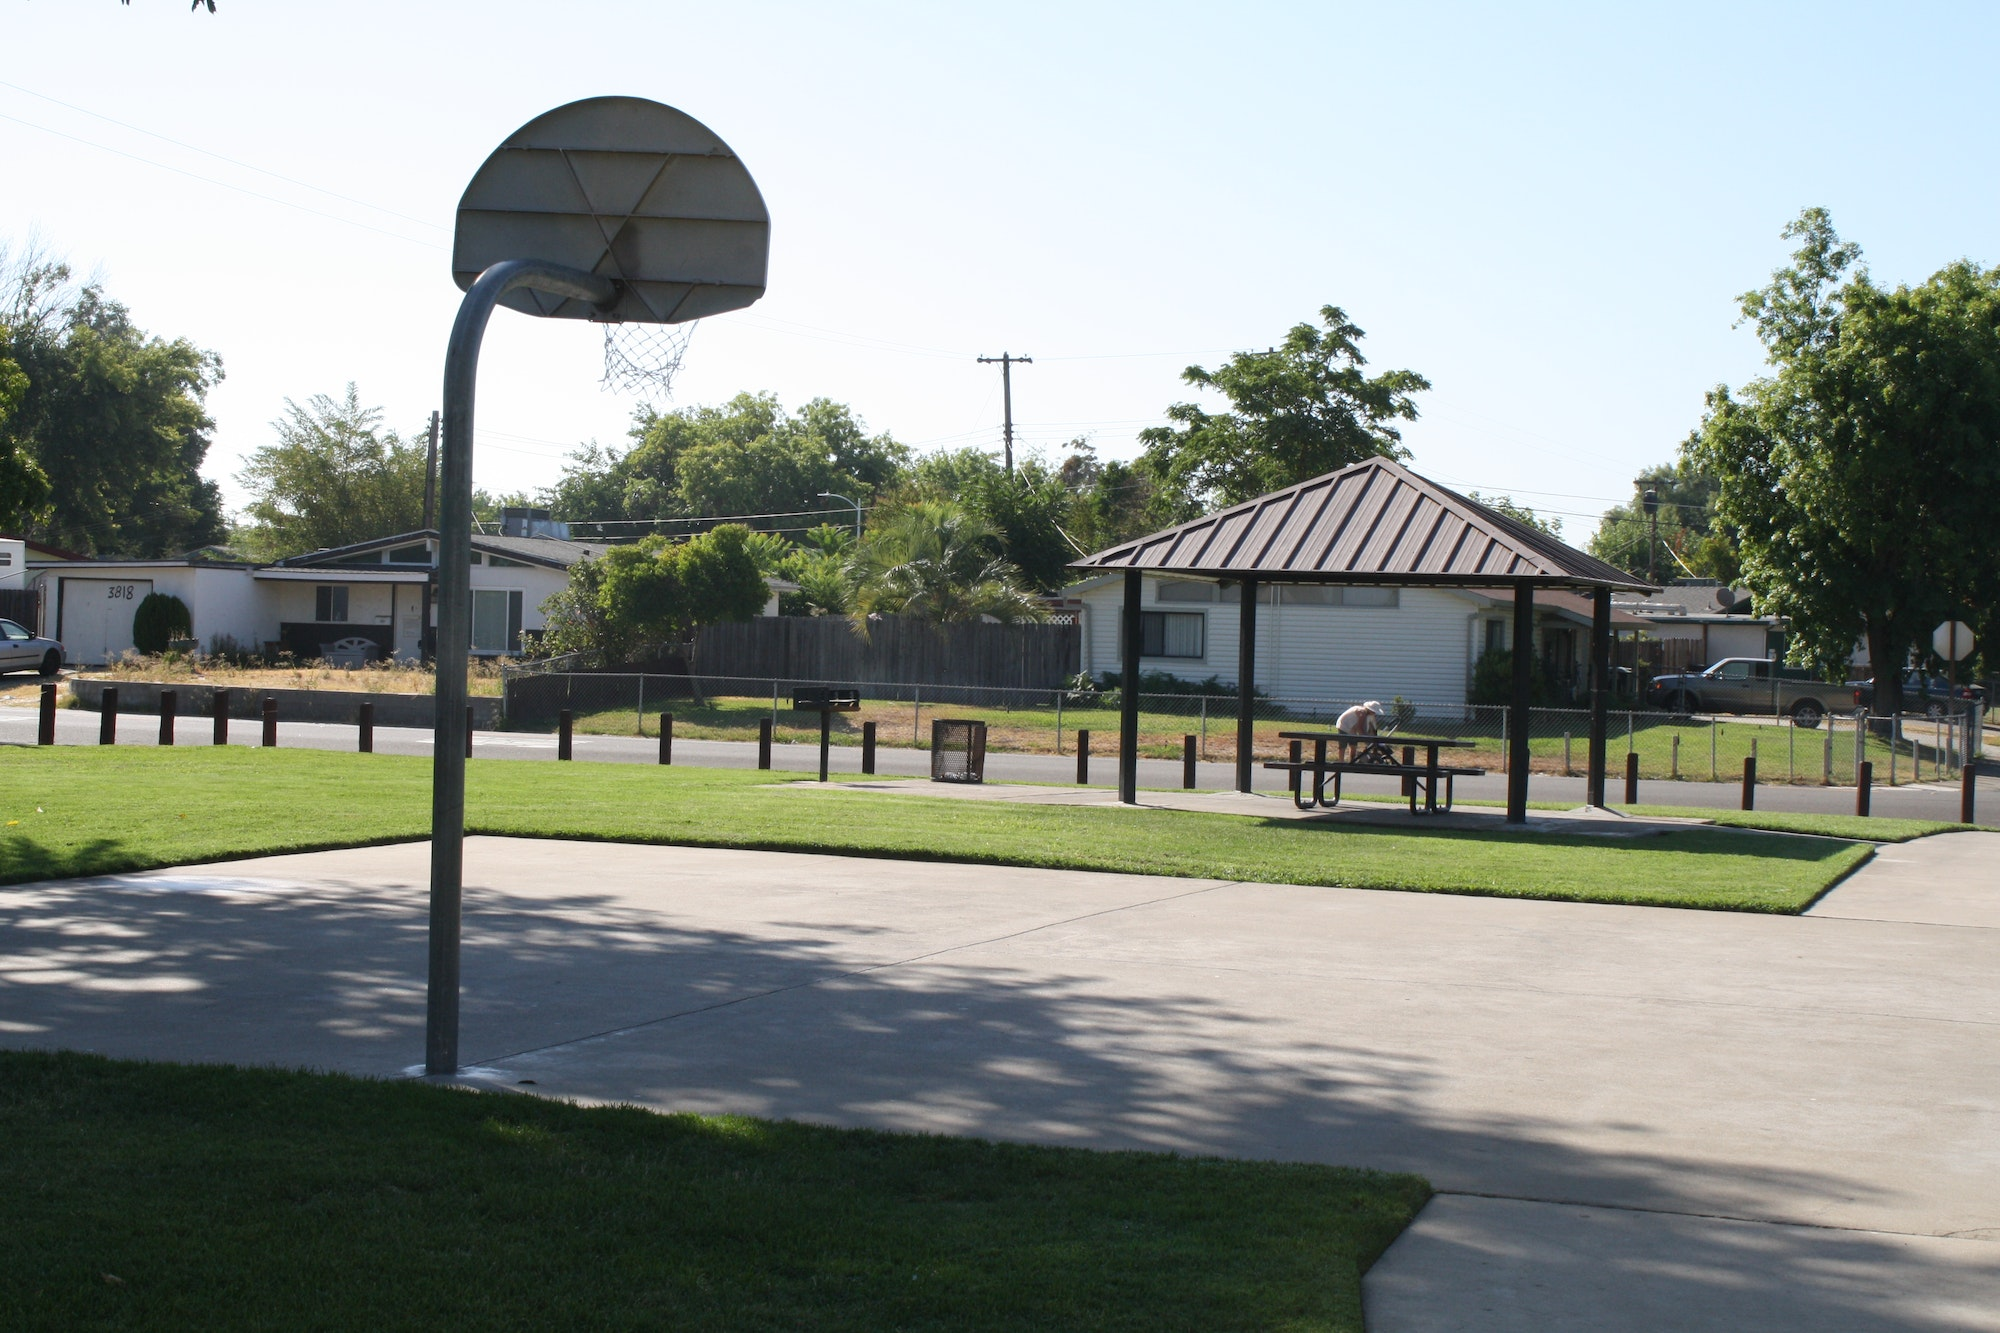 Karl Rosario Park basketball court and covered picnic area